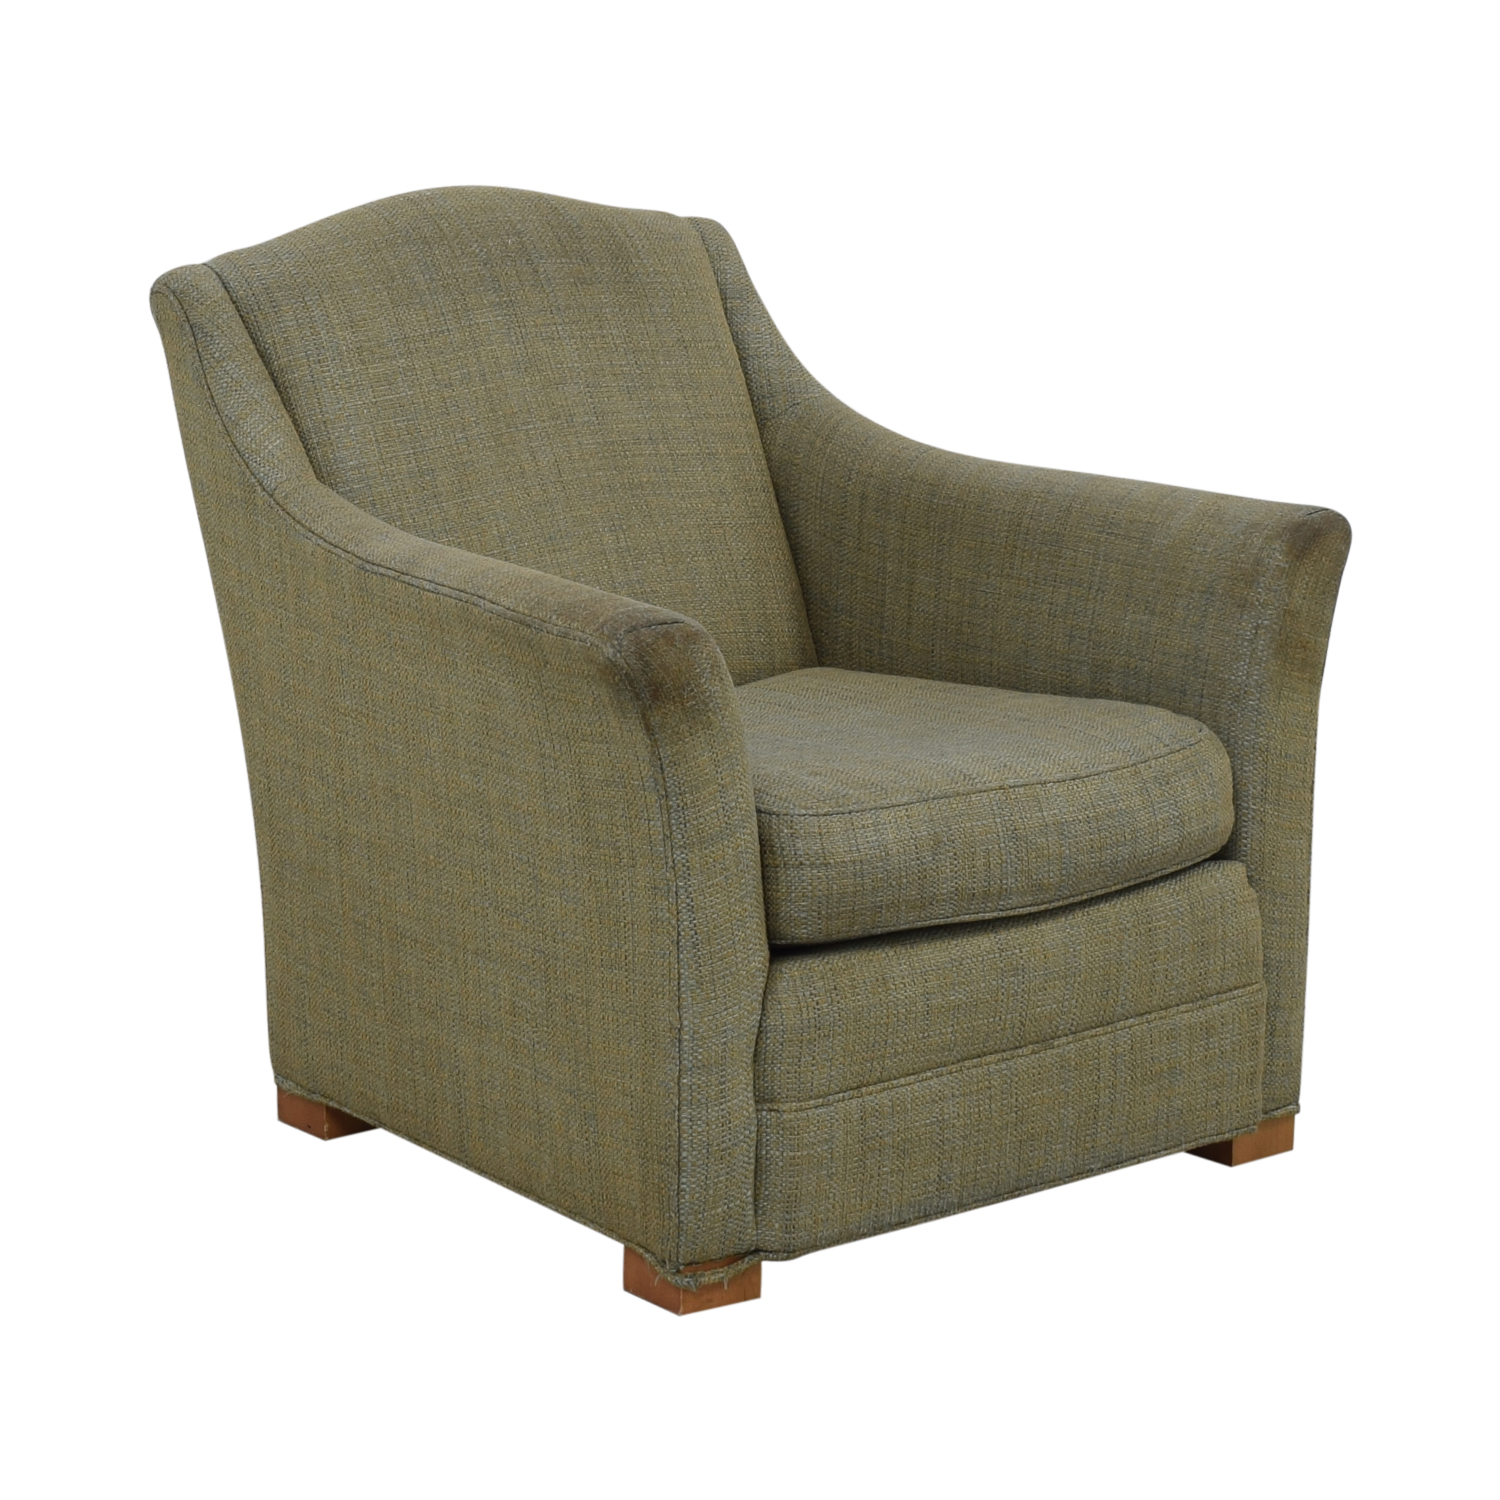 buy Mitchell Gold + Bob Williams Armchair Mitchell Gold + Bob Williams Chairs